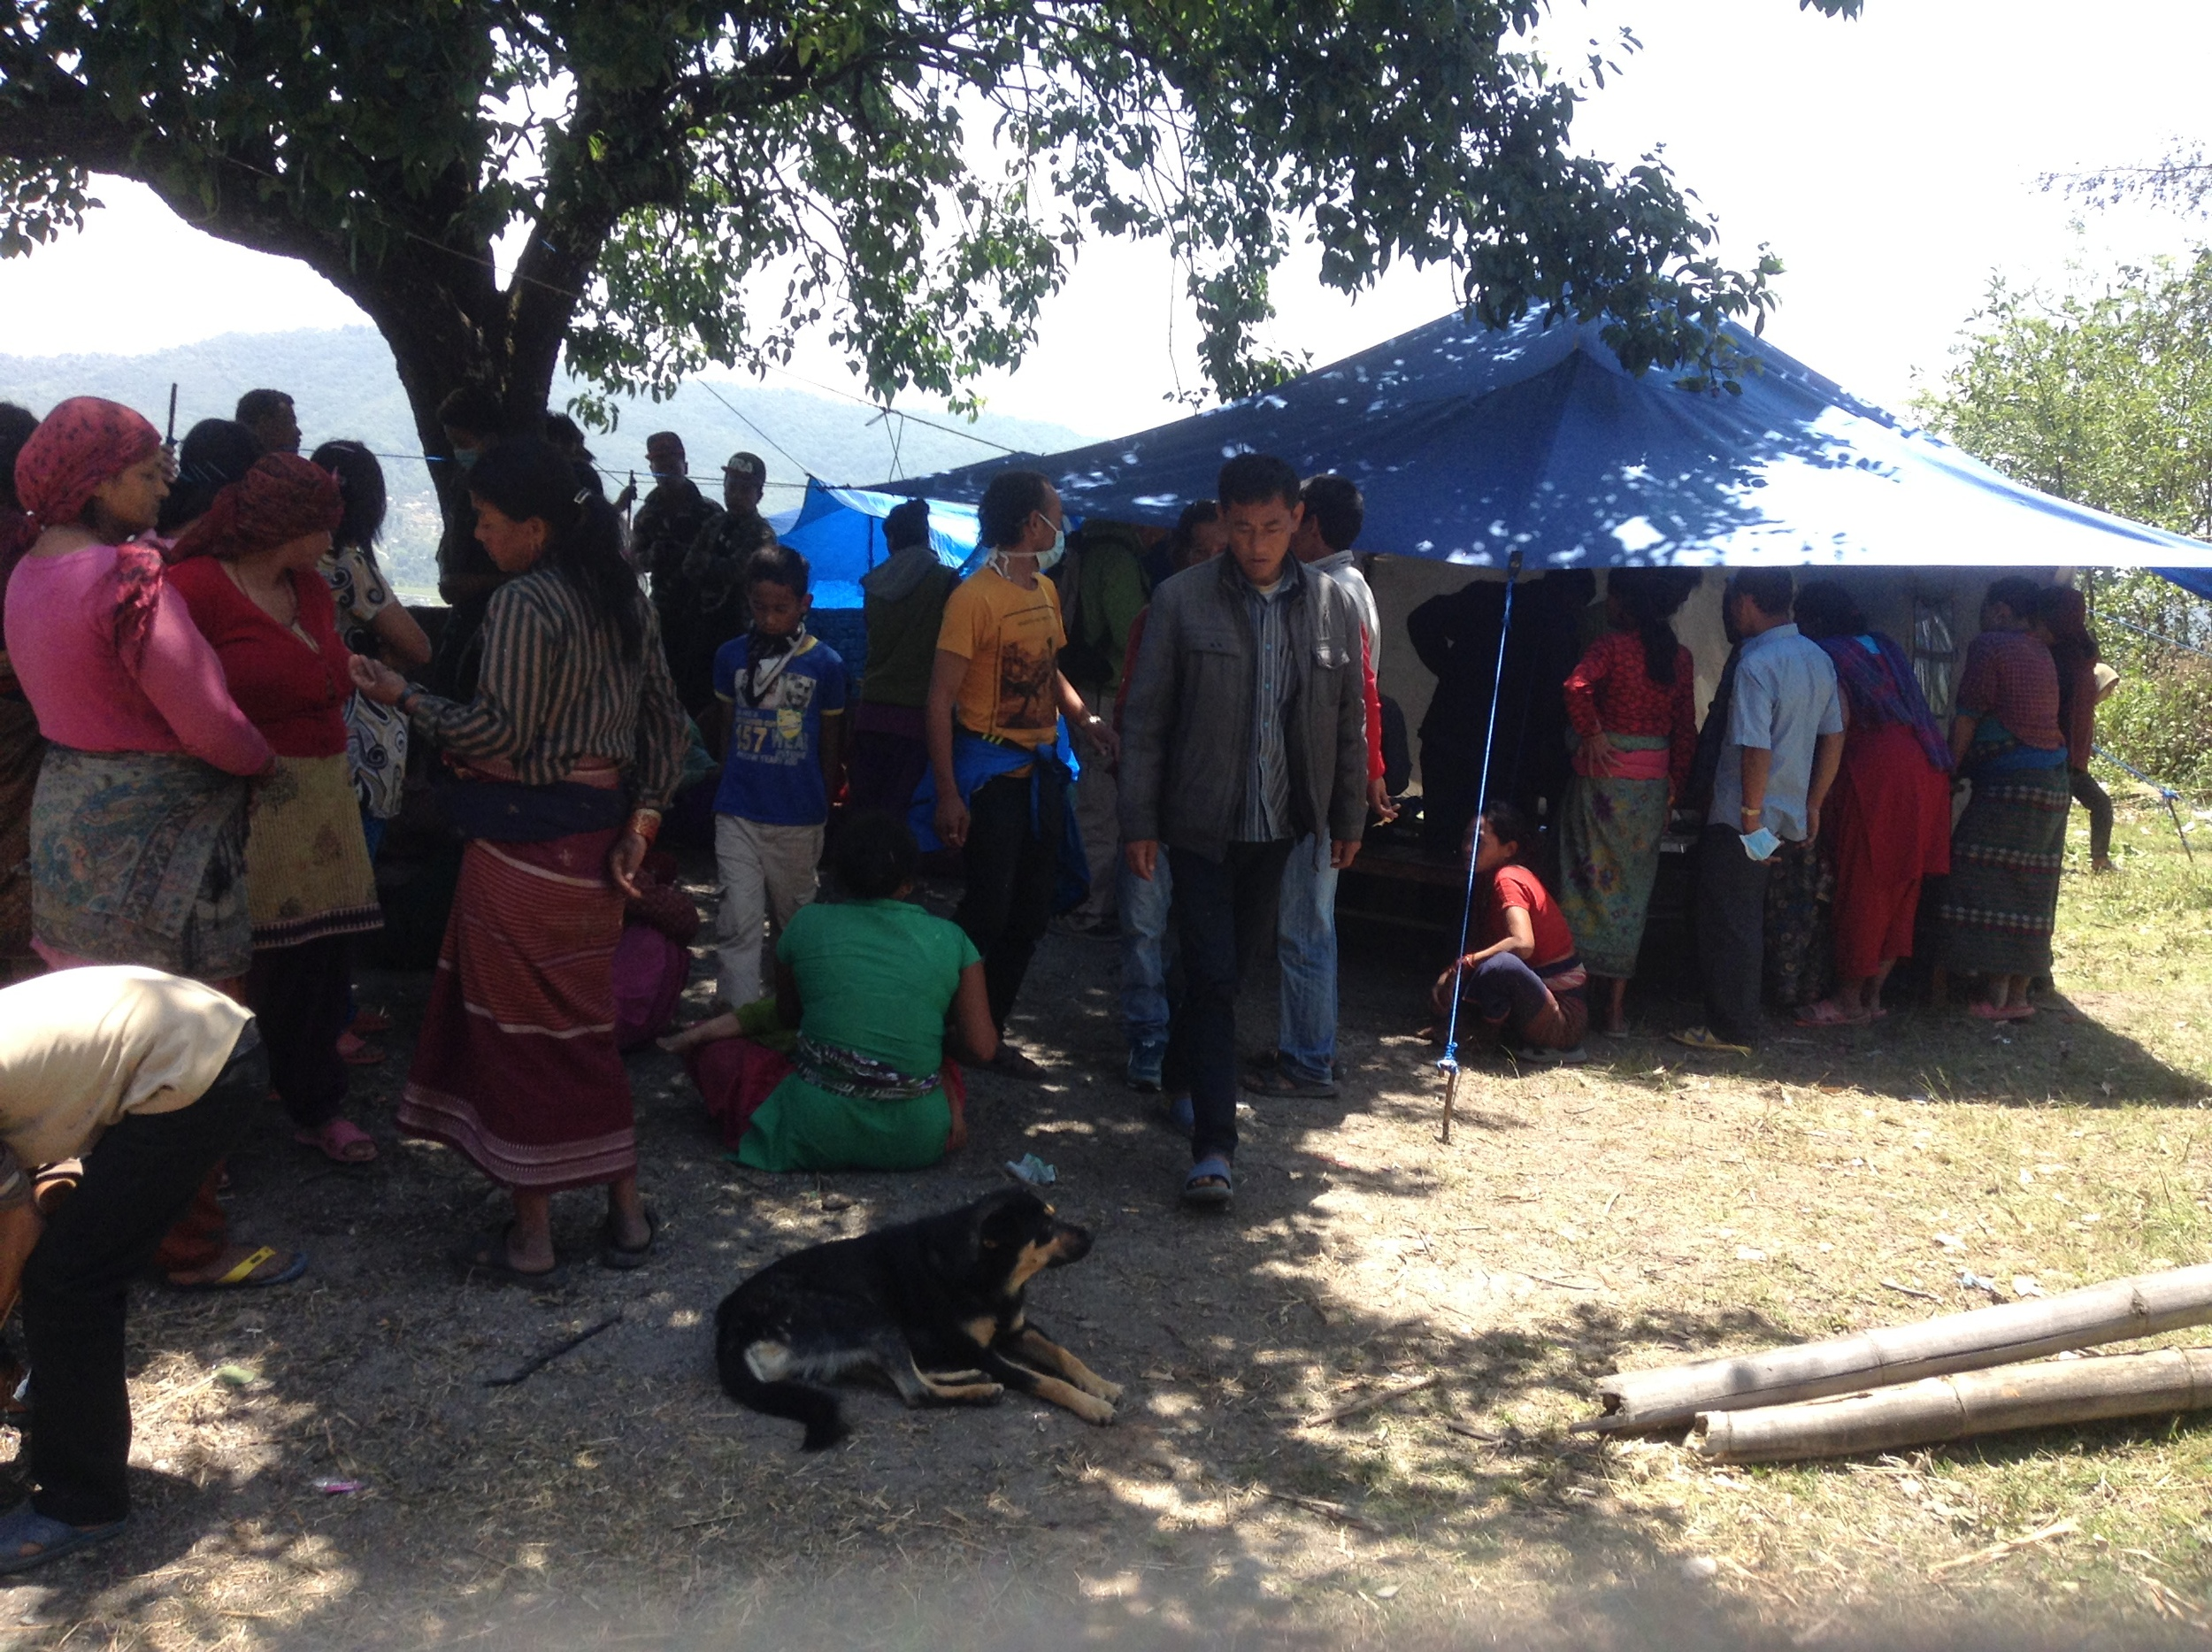 Distribution and registrationtent at the Sankhu Relief center.